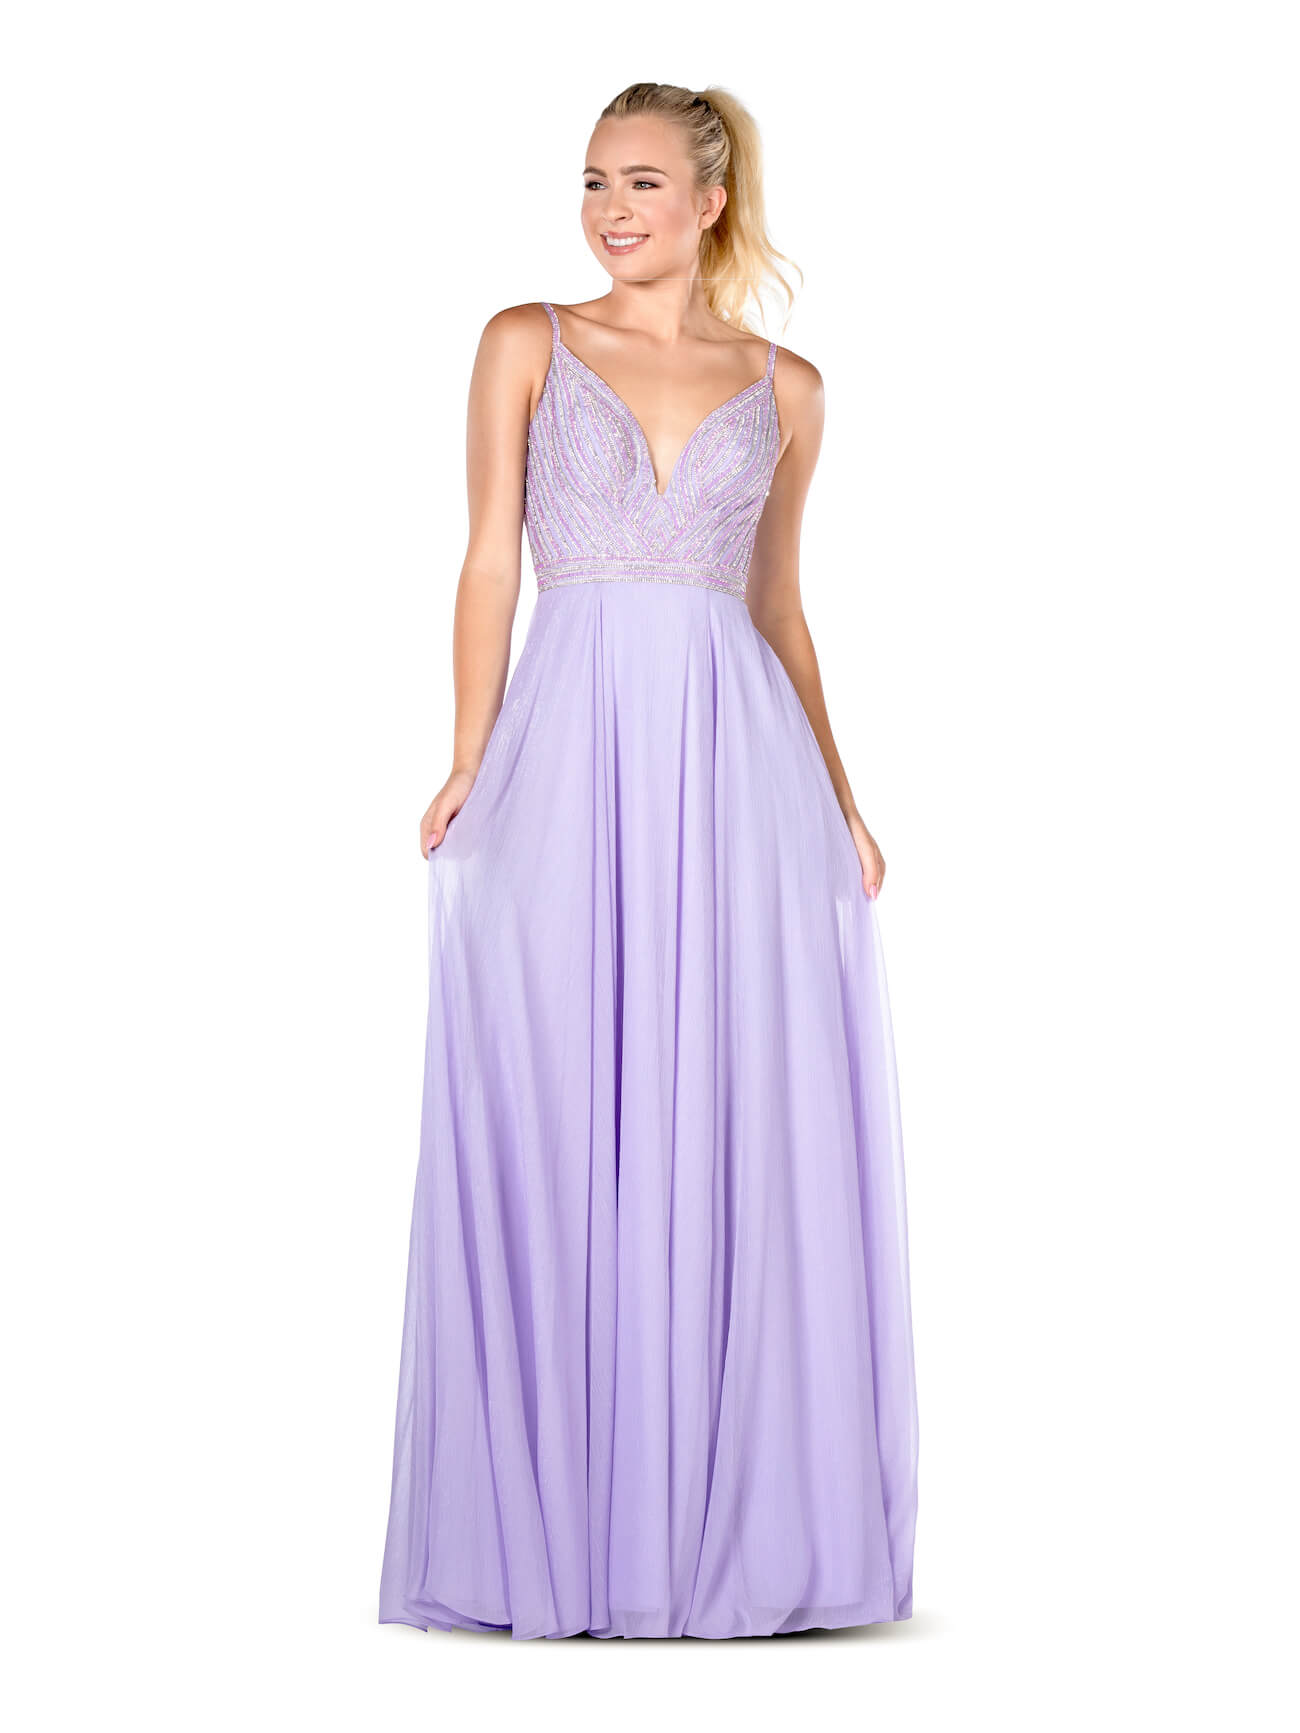 Queenly size 2 Vienna Purple A-line evening gown/formal dress